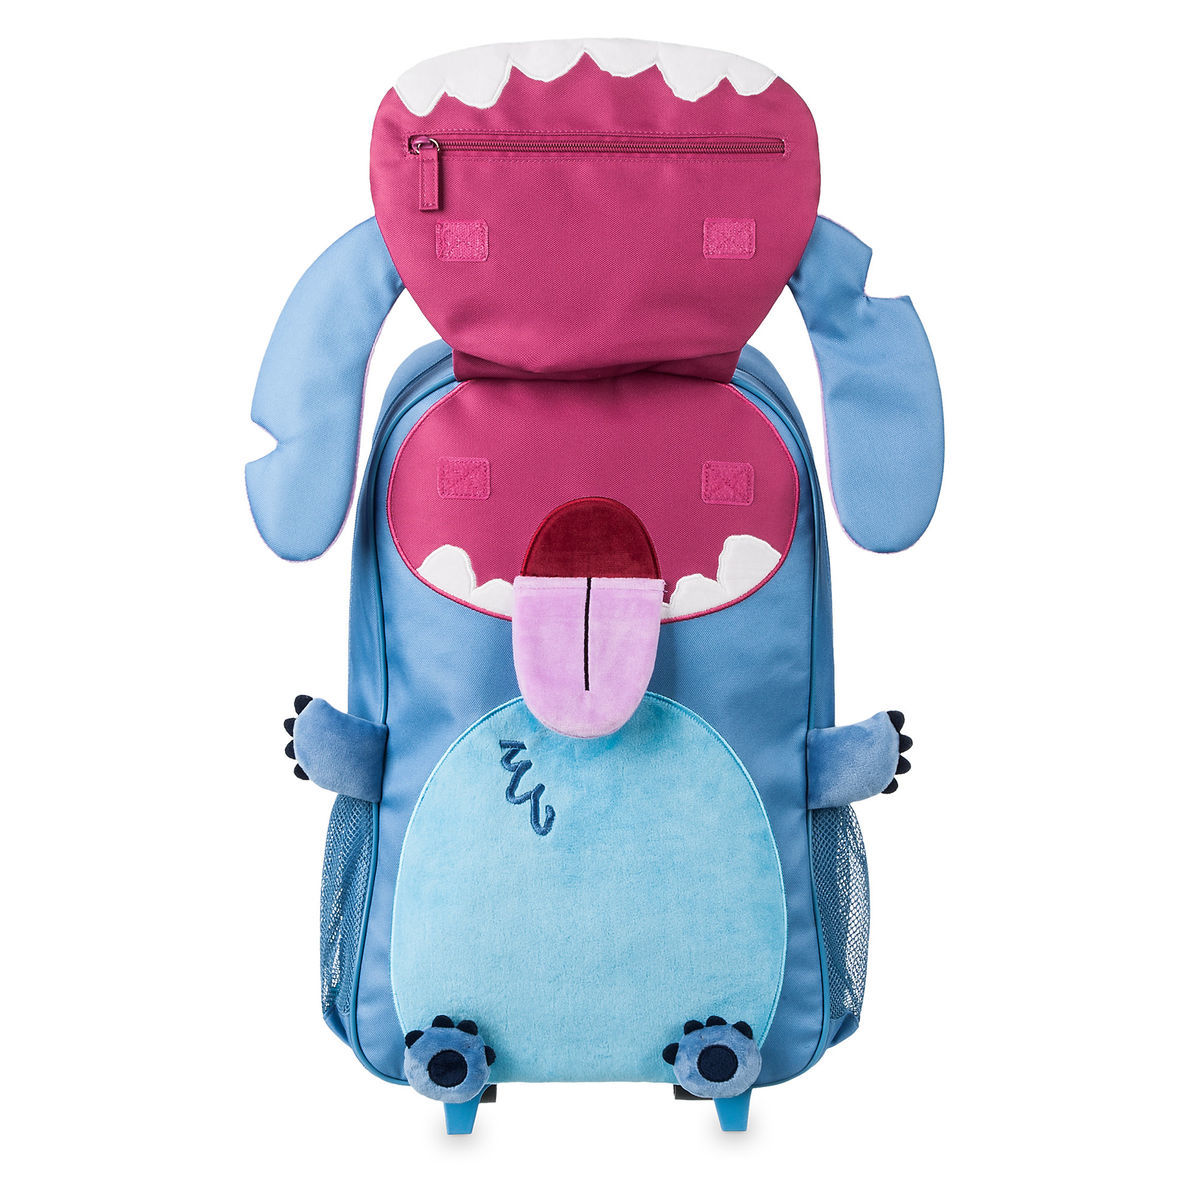 7033255d834c Stitch Rolling Backpack - Personalizable